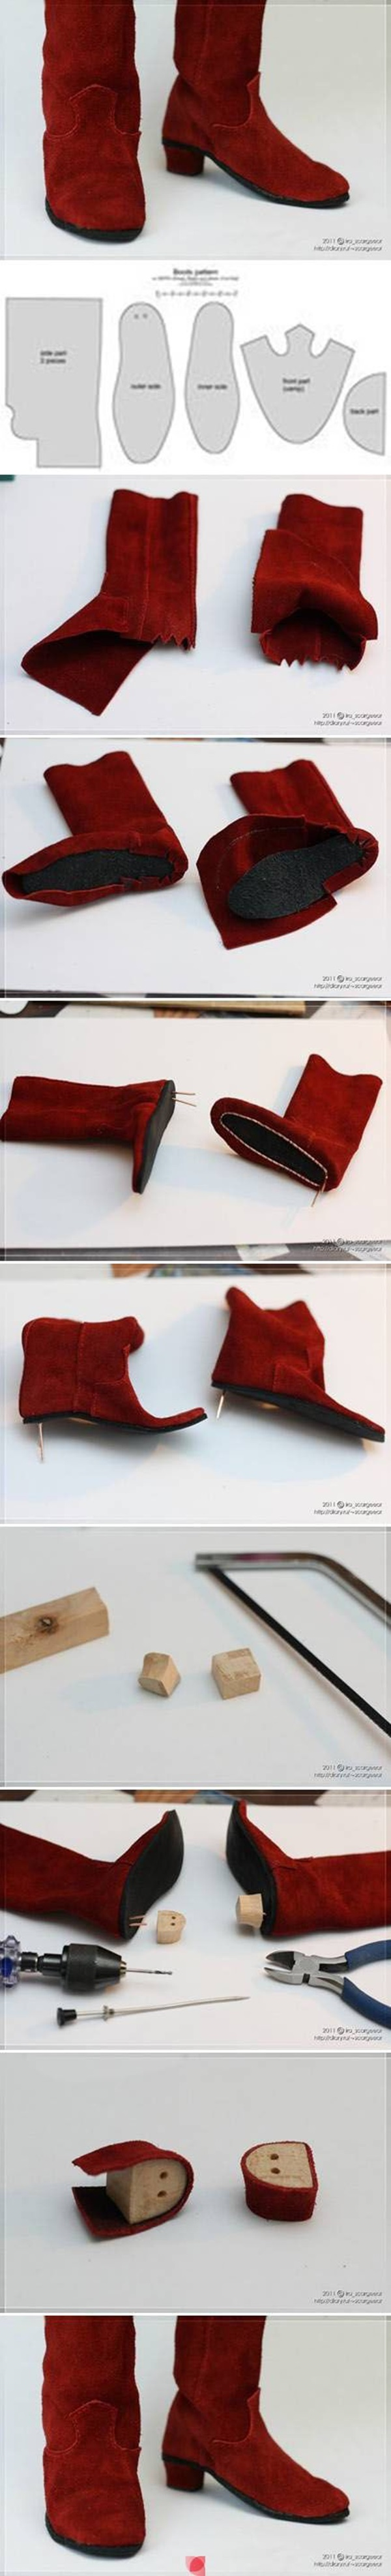 10 Cute DIY Slipper Ideas (4)